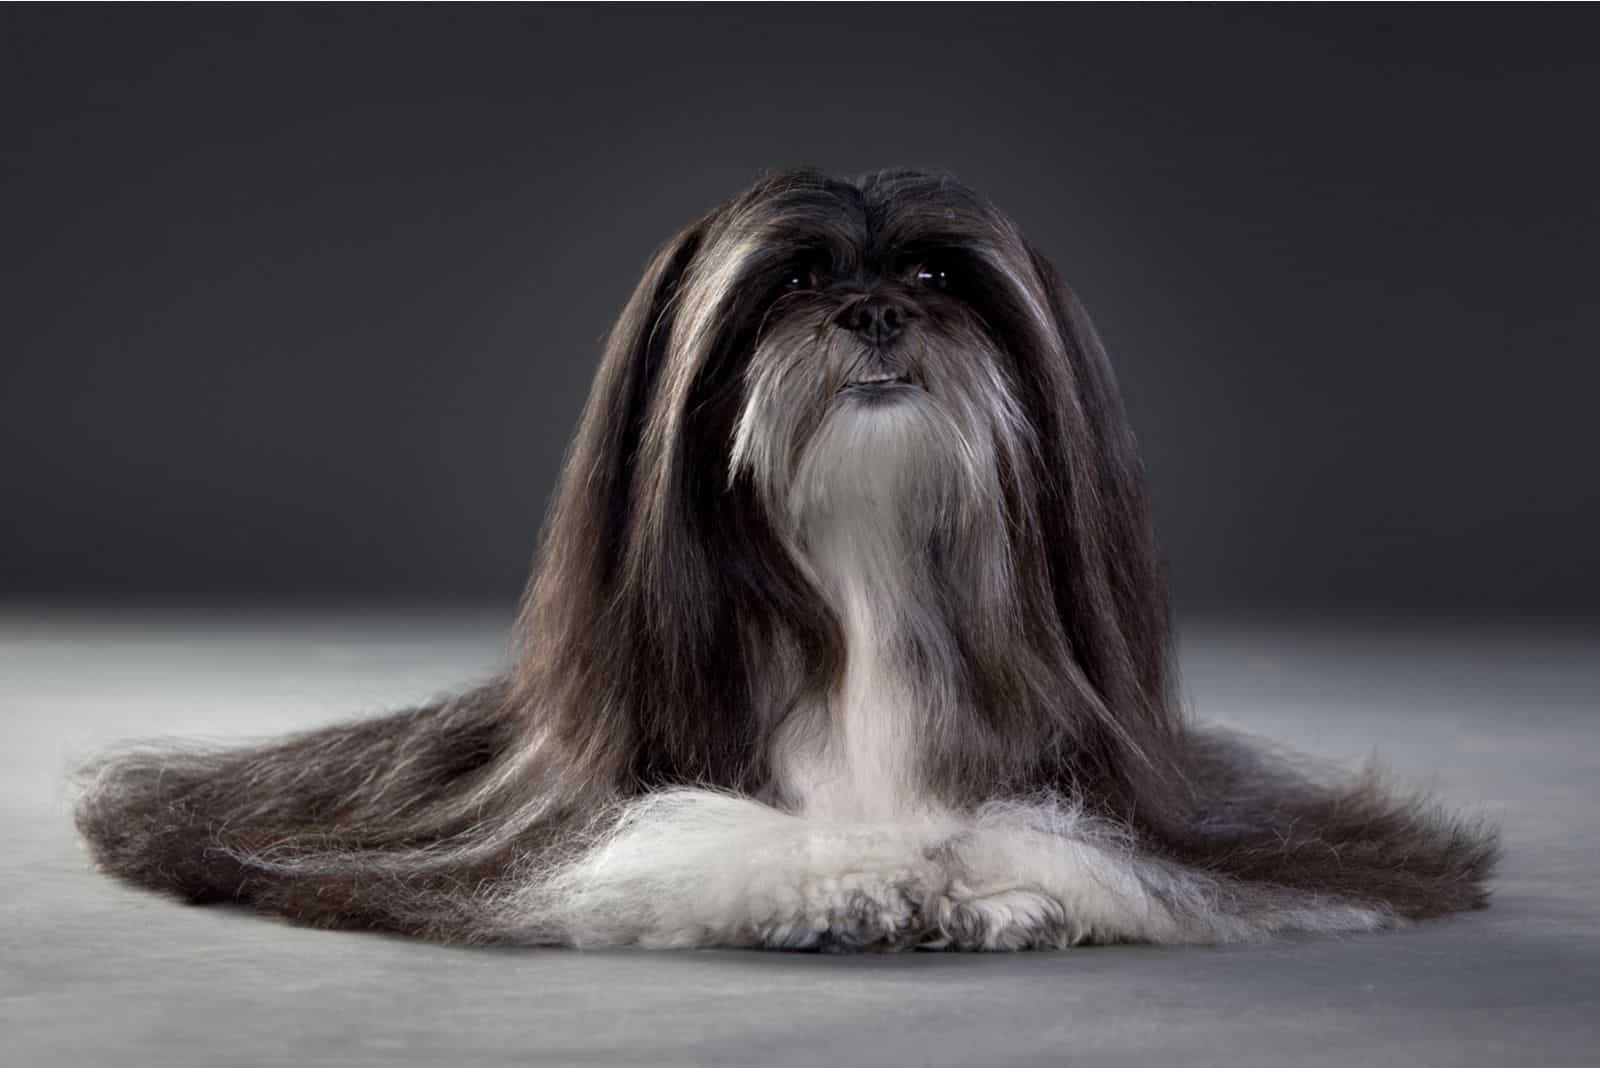 pretty long haired dog in black and white posing